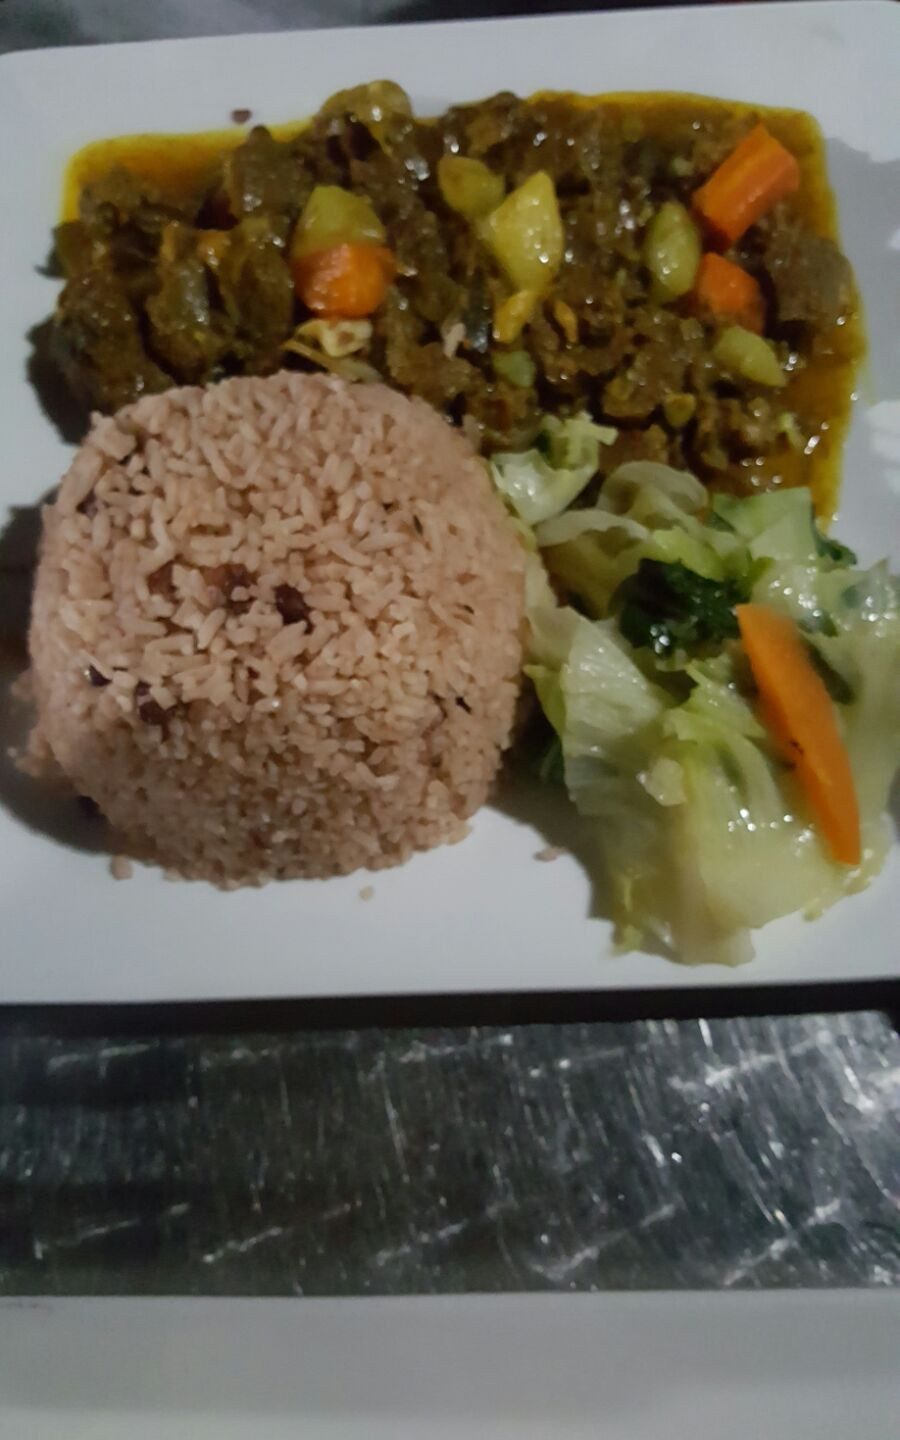 Curry Goat meal